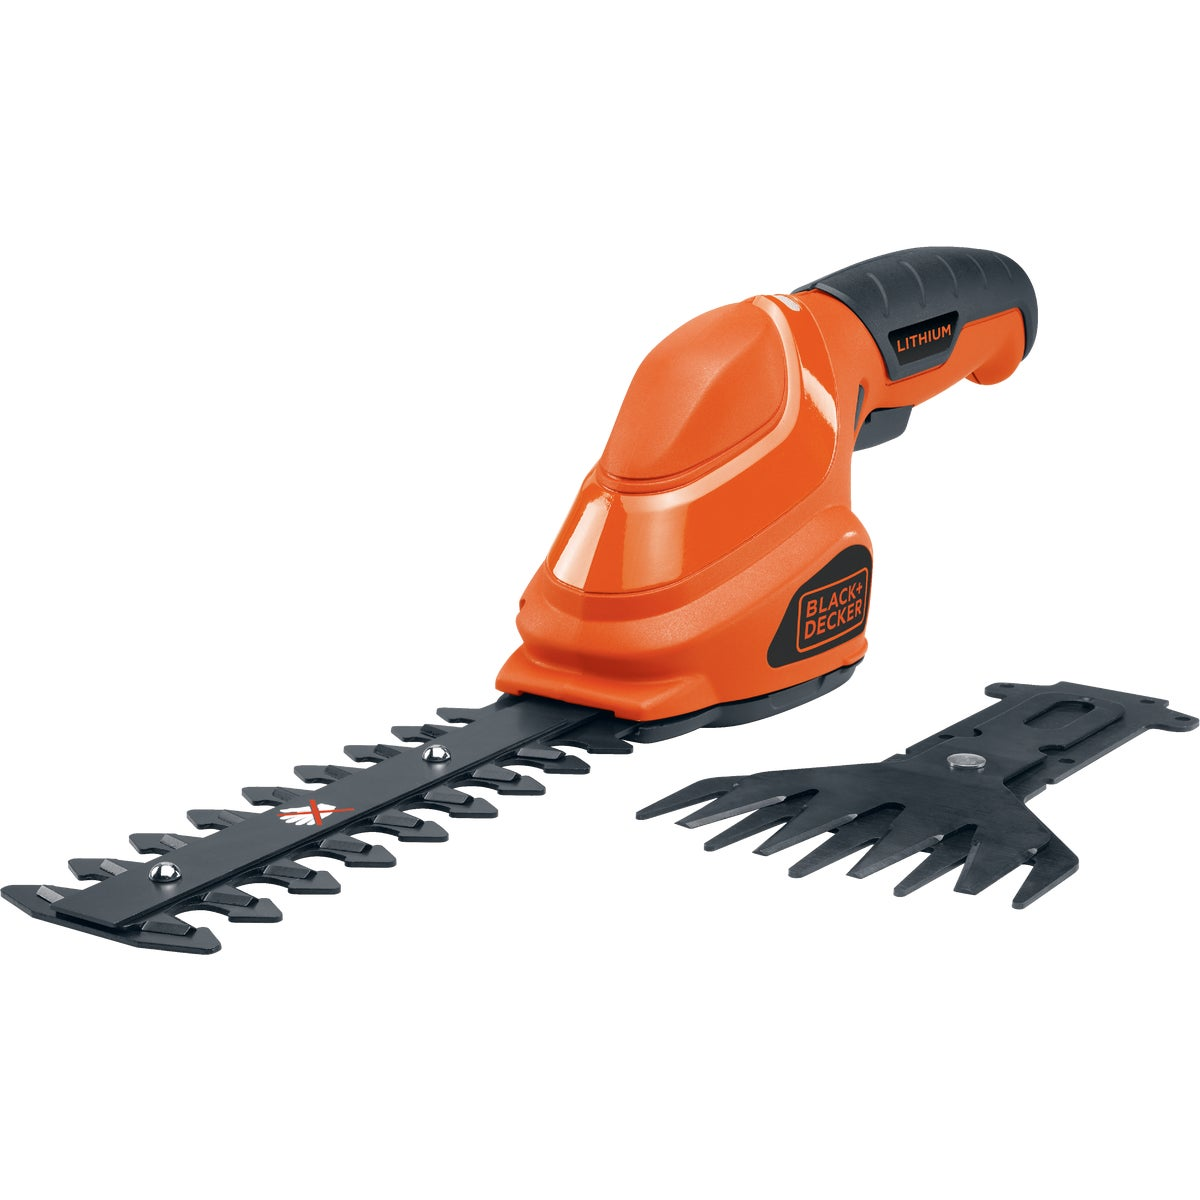 SHEAR/SHRUBBER COMBO - GSL35 by Black & Decker